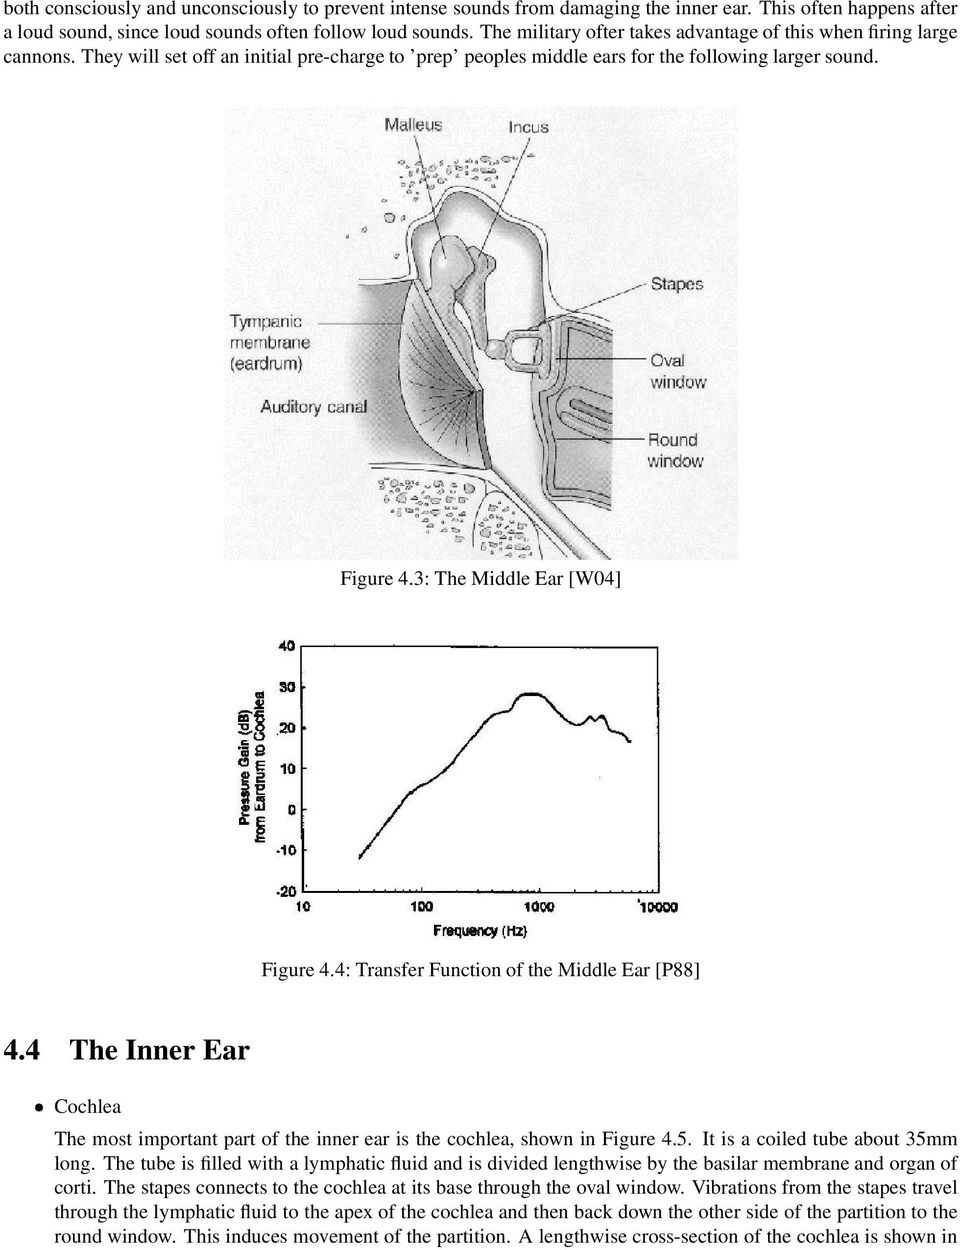 3: The Middle Ear [W04] Figure 4.4: Transfer Function of the Middle Ear [P88] 4.4 The Inner Ear Cochlea The most important part of the inner ear is the cochlea, shown in Figure 4.5.